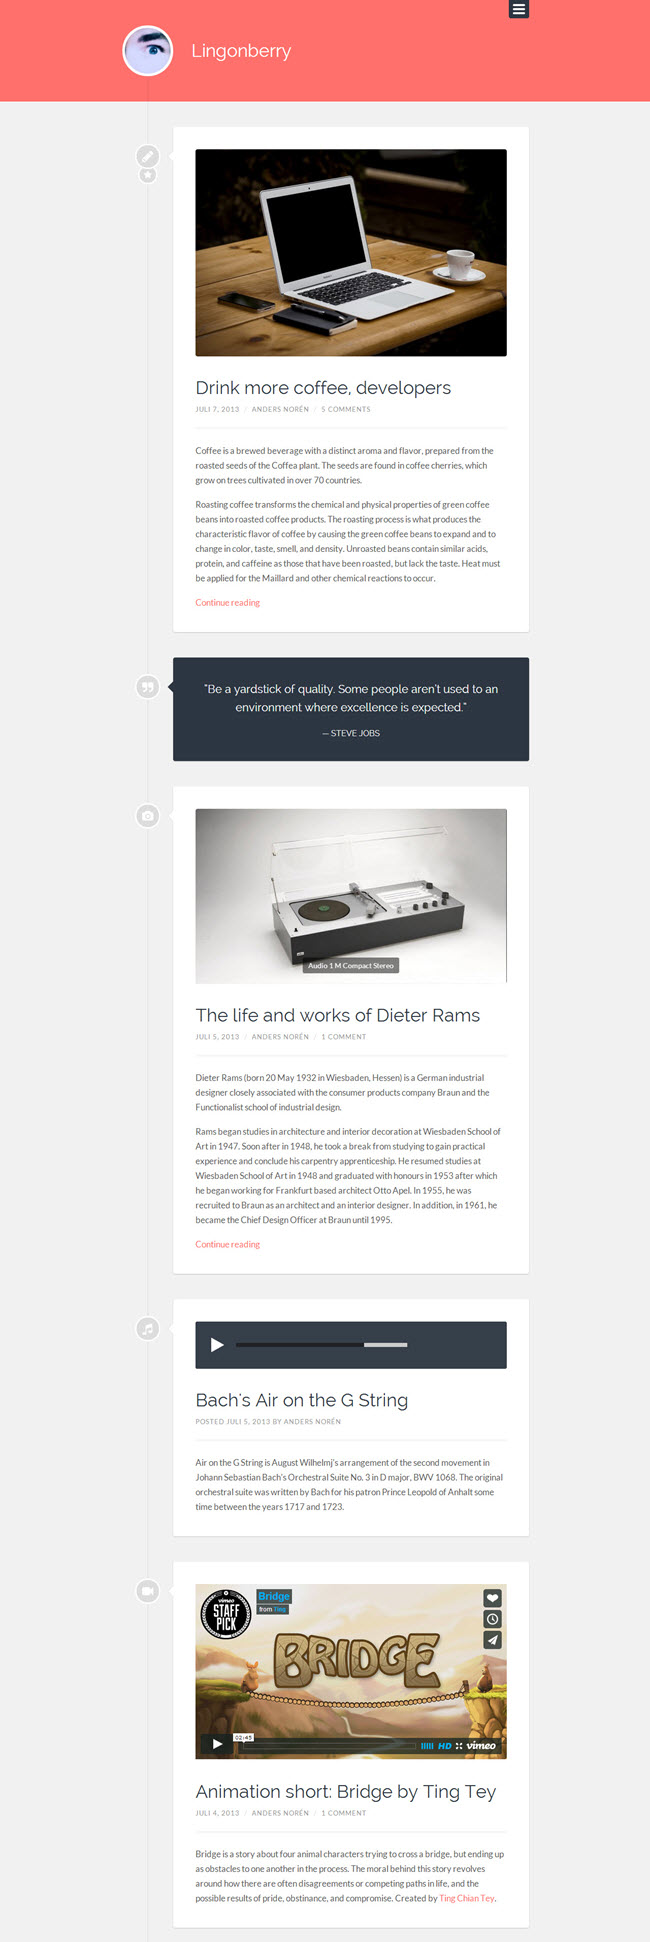 378 10 Best Free WordPress Themes for April 2014